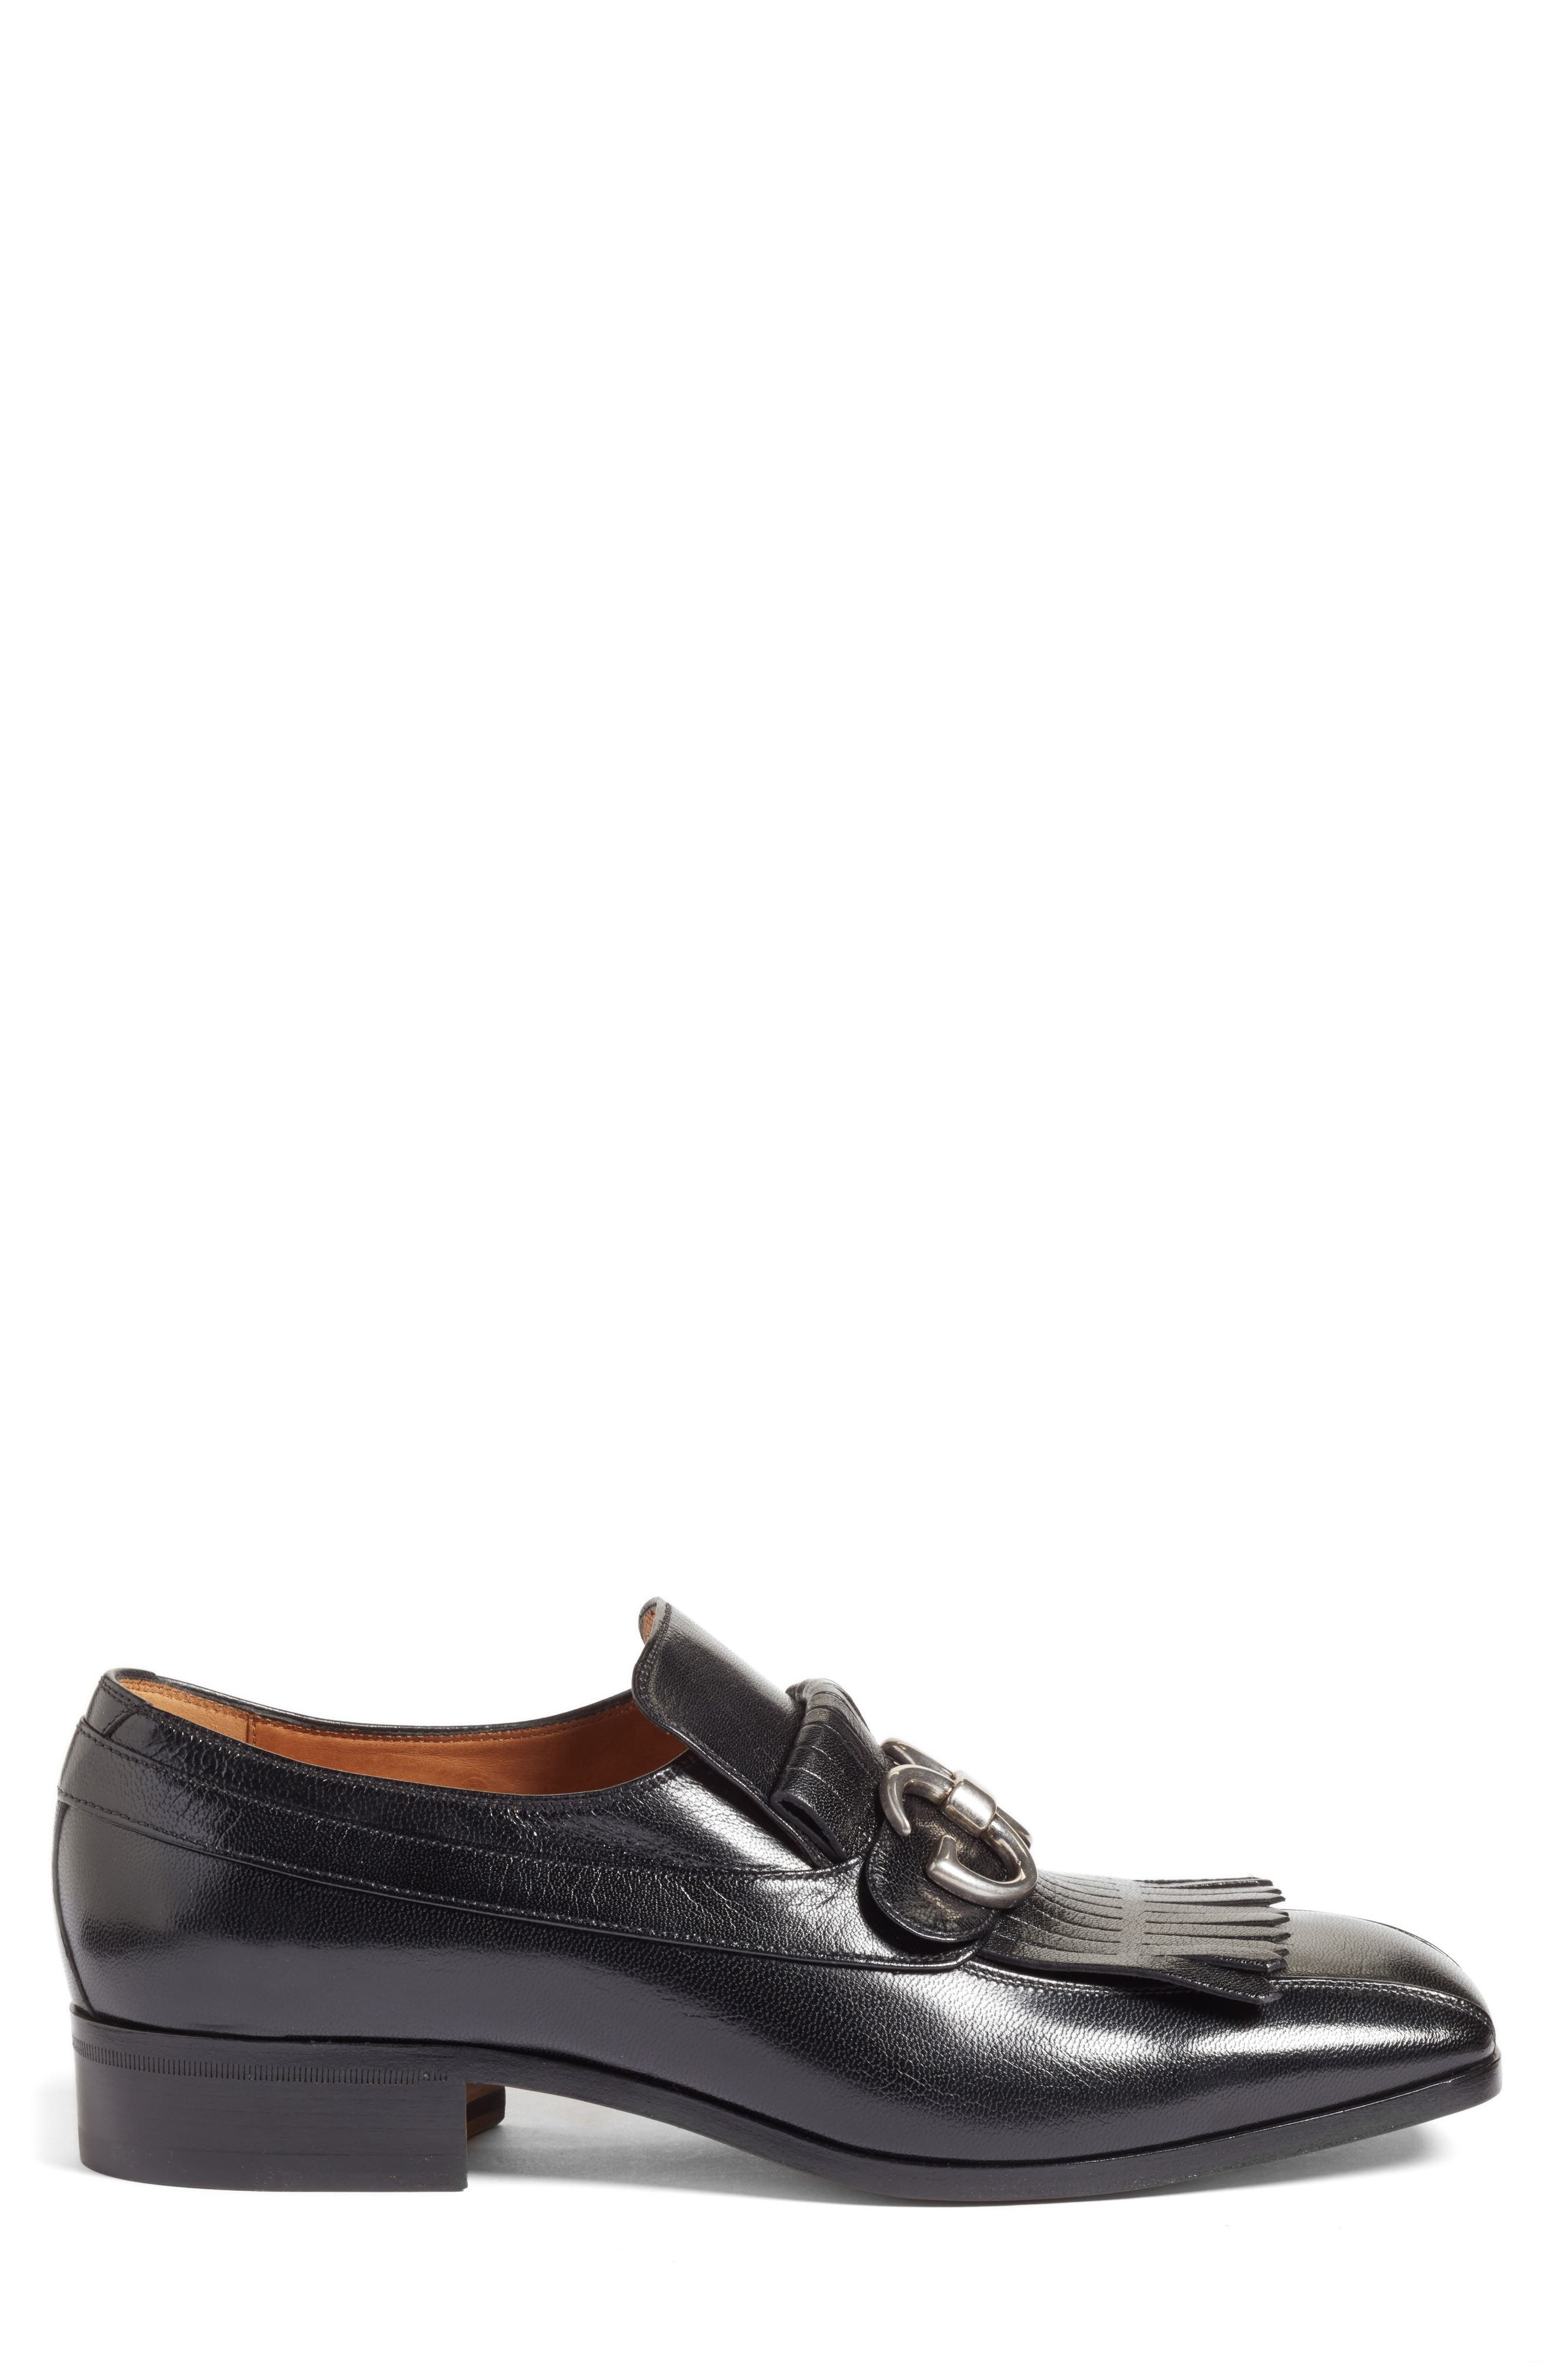 Alternate Image 3  - Gucci Novel Marmont Kiltie Loafer (Men)